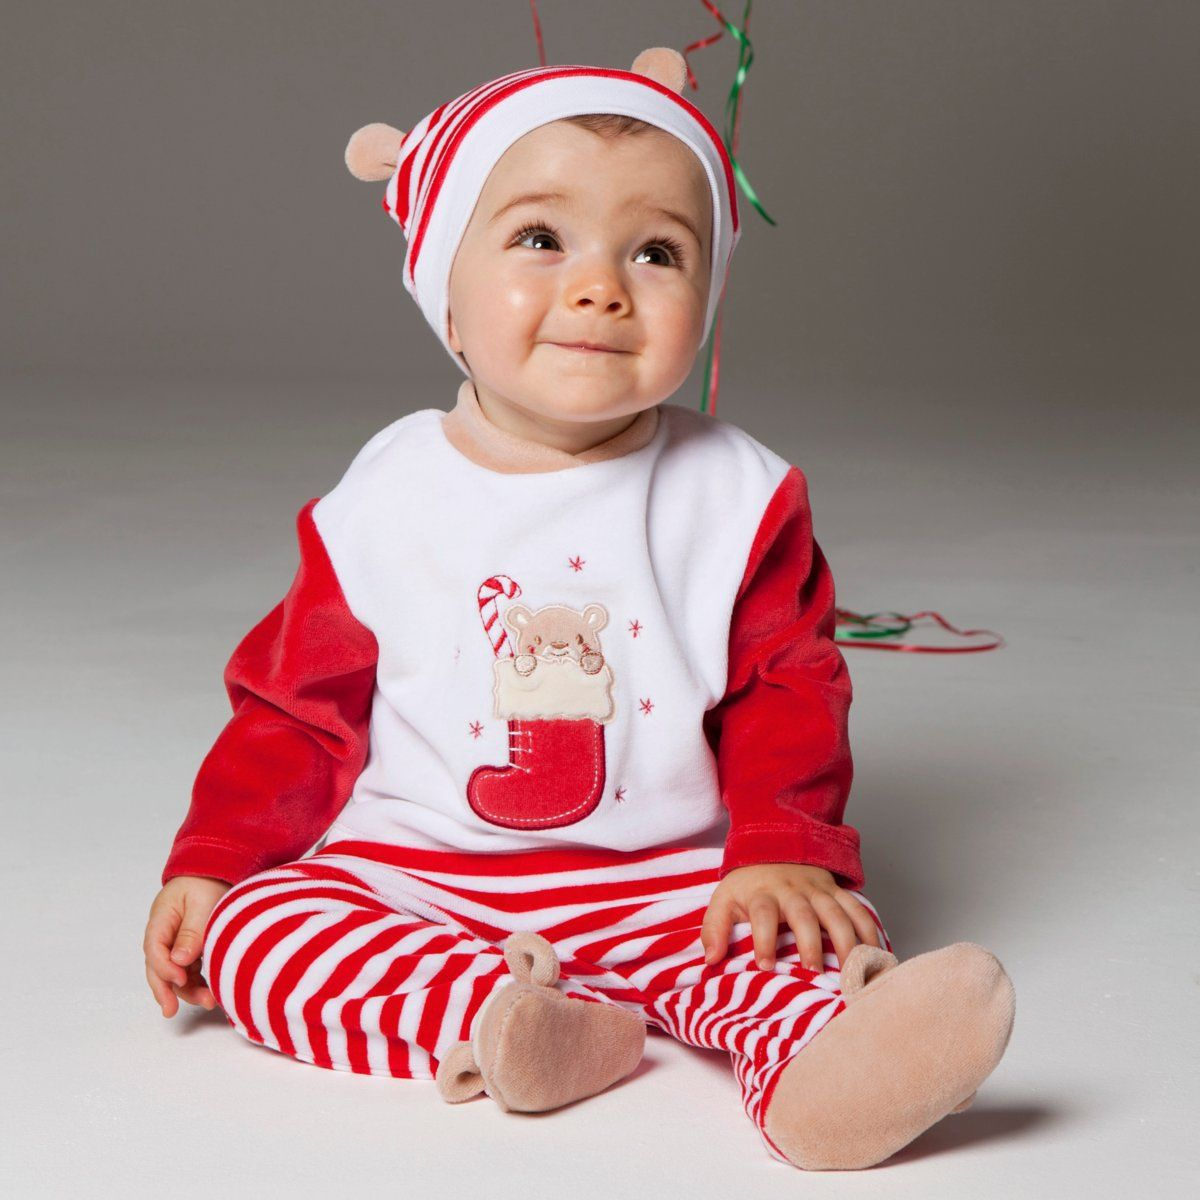 baby boys christmas clothes suit 4pcs set | Christmas time ...